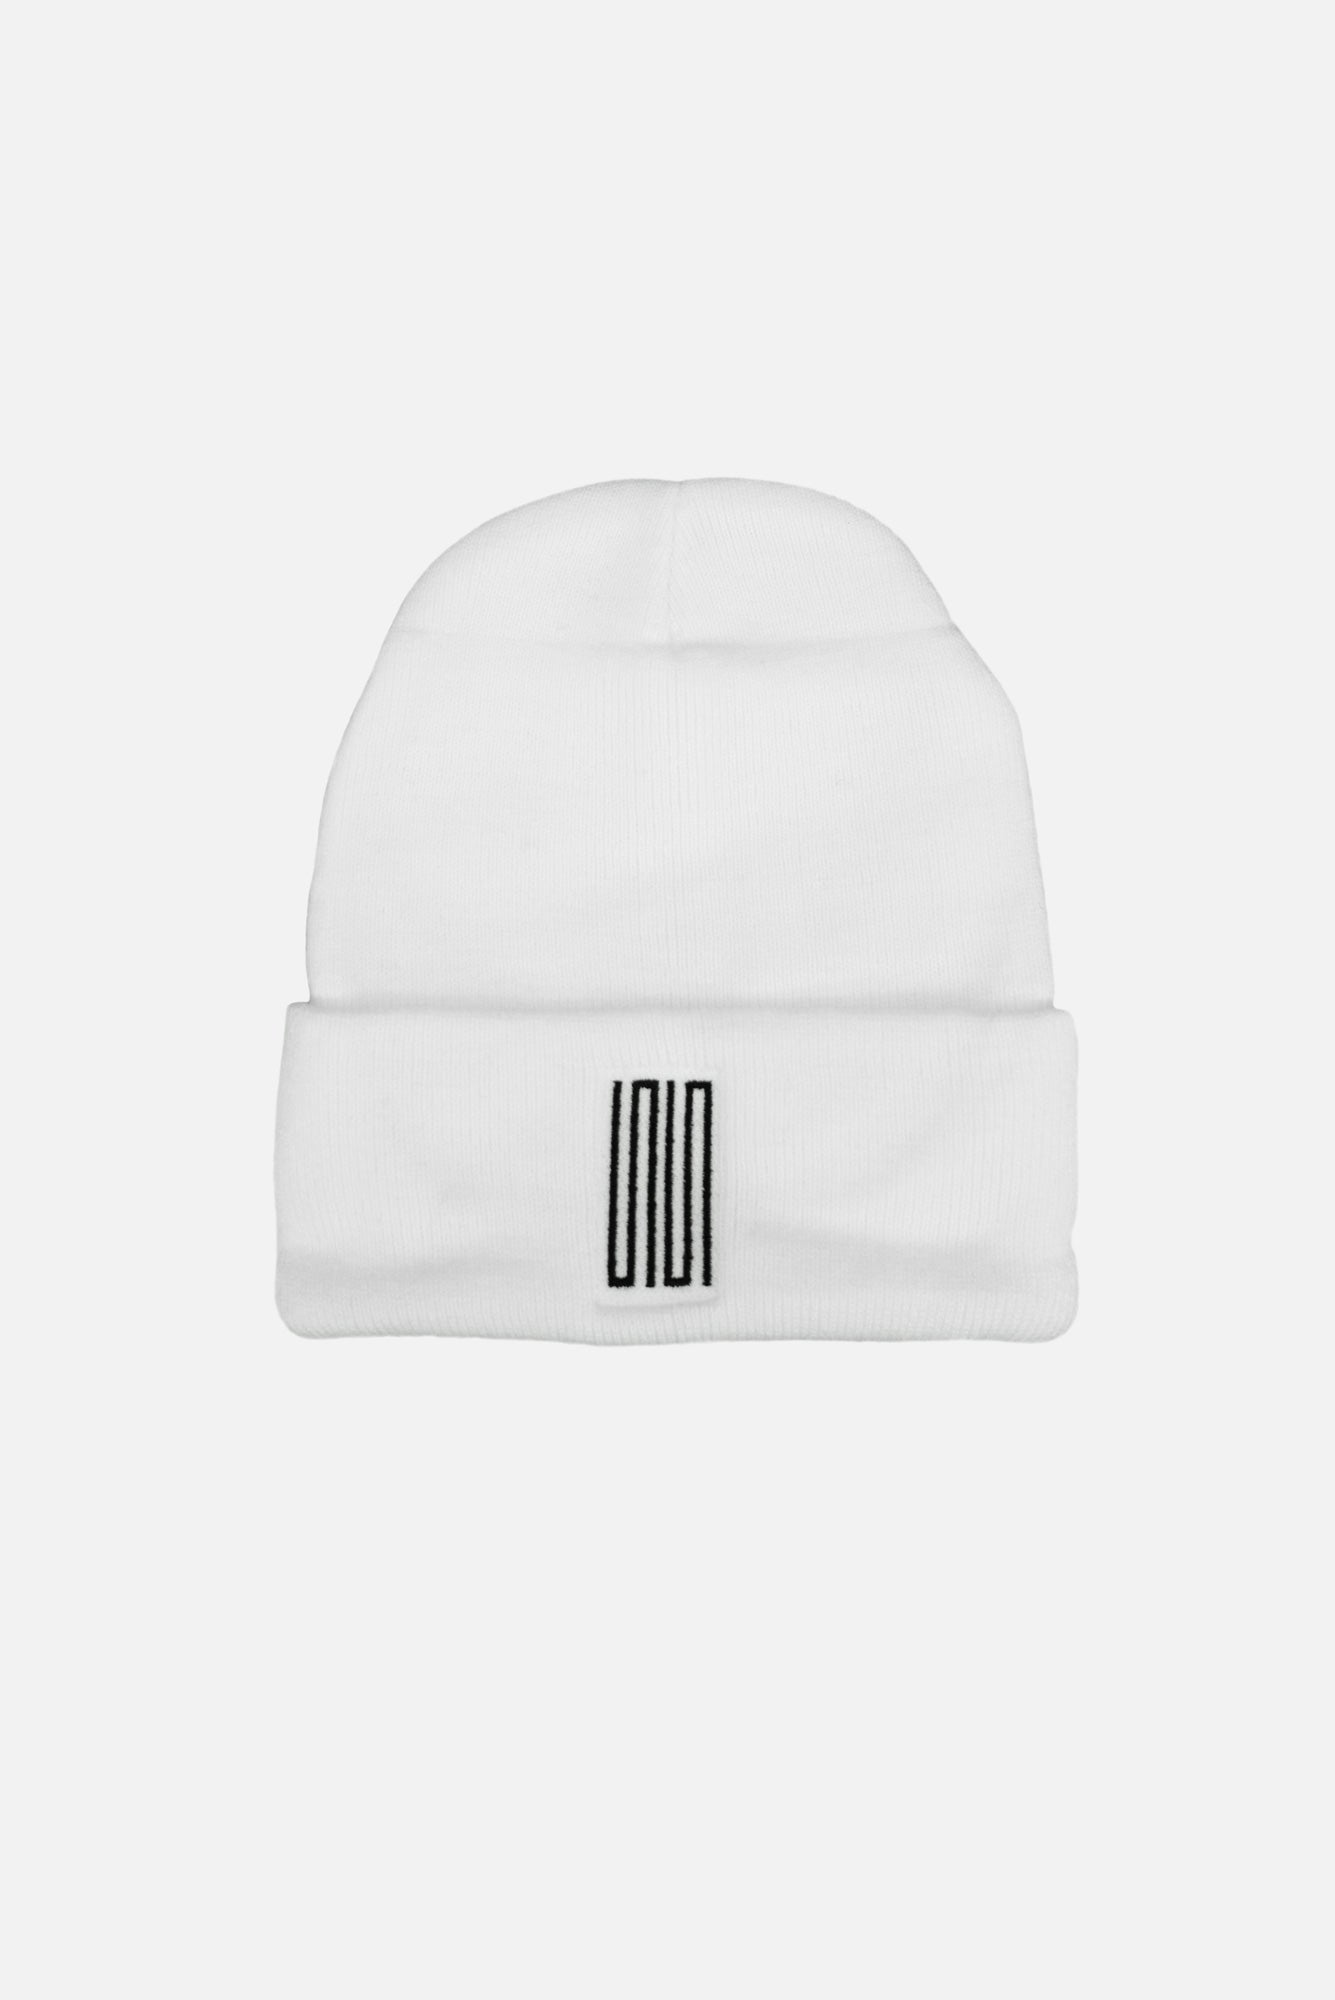 sano article 7 logo beanie - scrt society